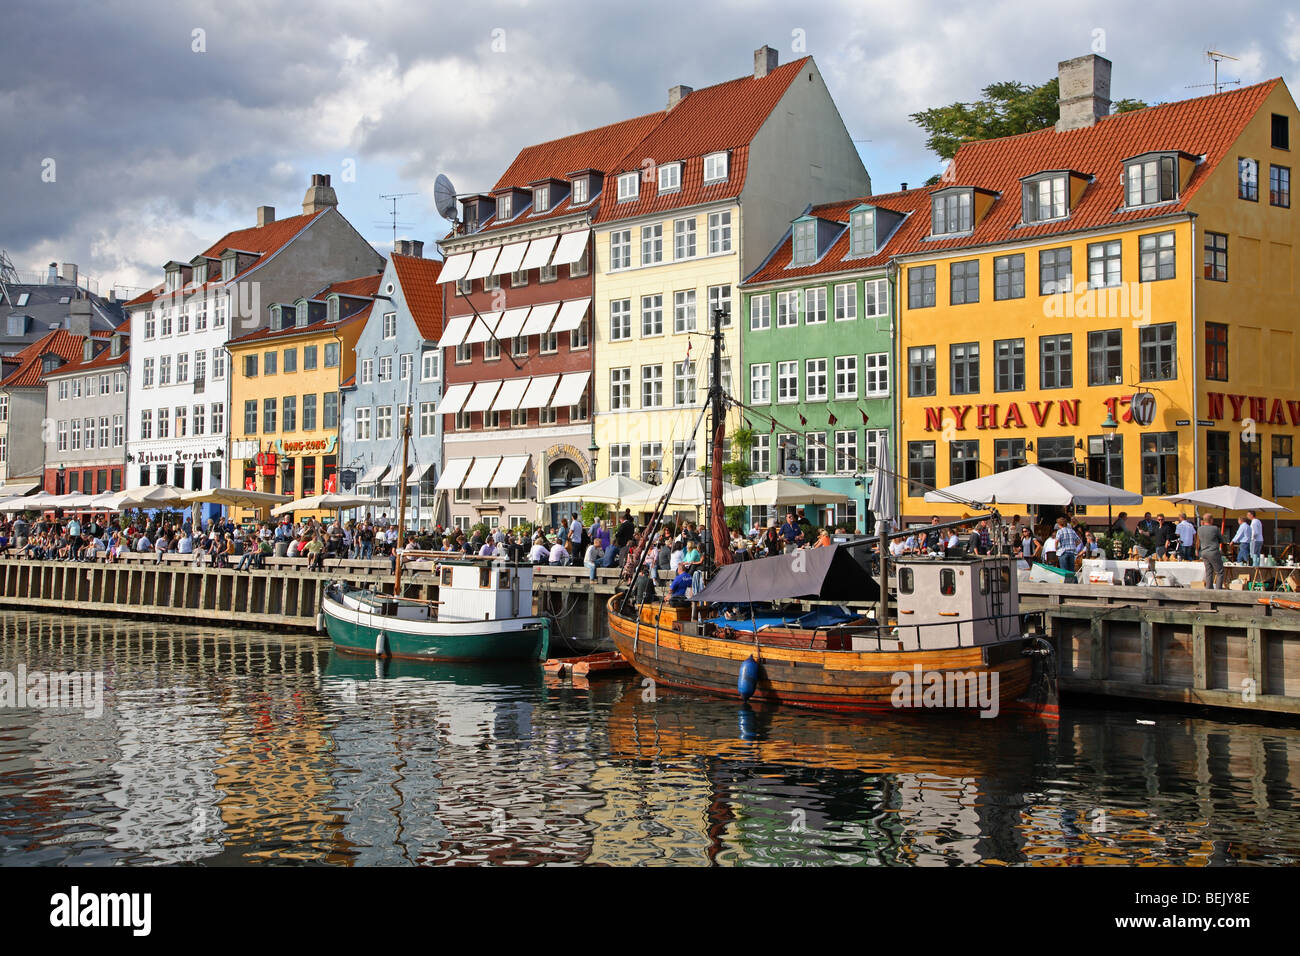 The canal in Nyhavn, Copenhagen, the old harbour quarter famous for  the old  painted houses, restaurants, bars, - Stock Image